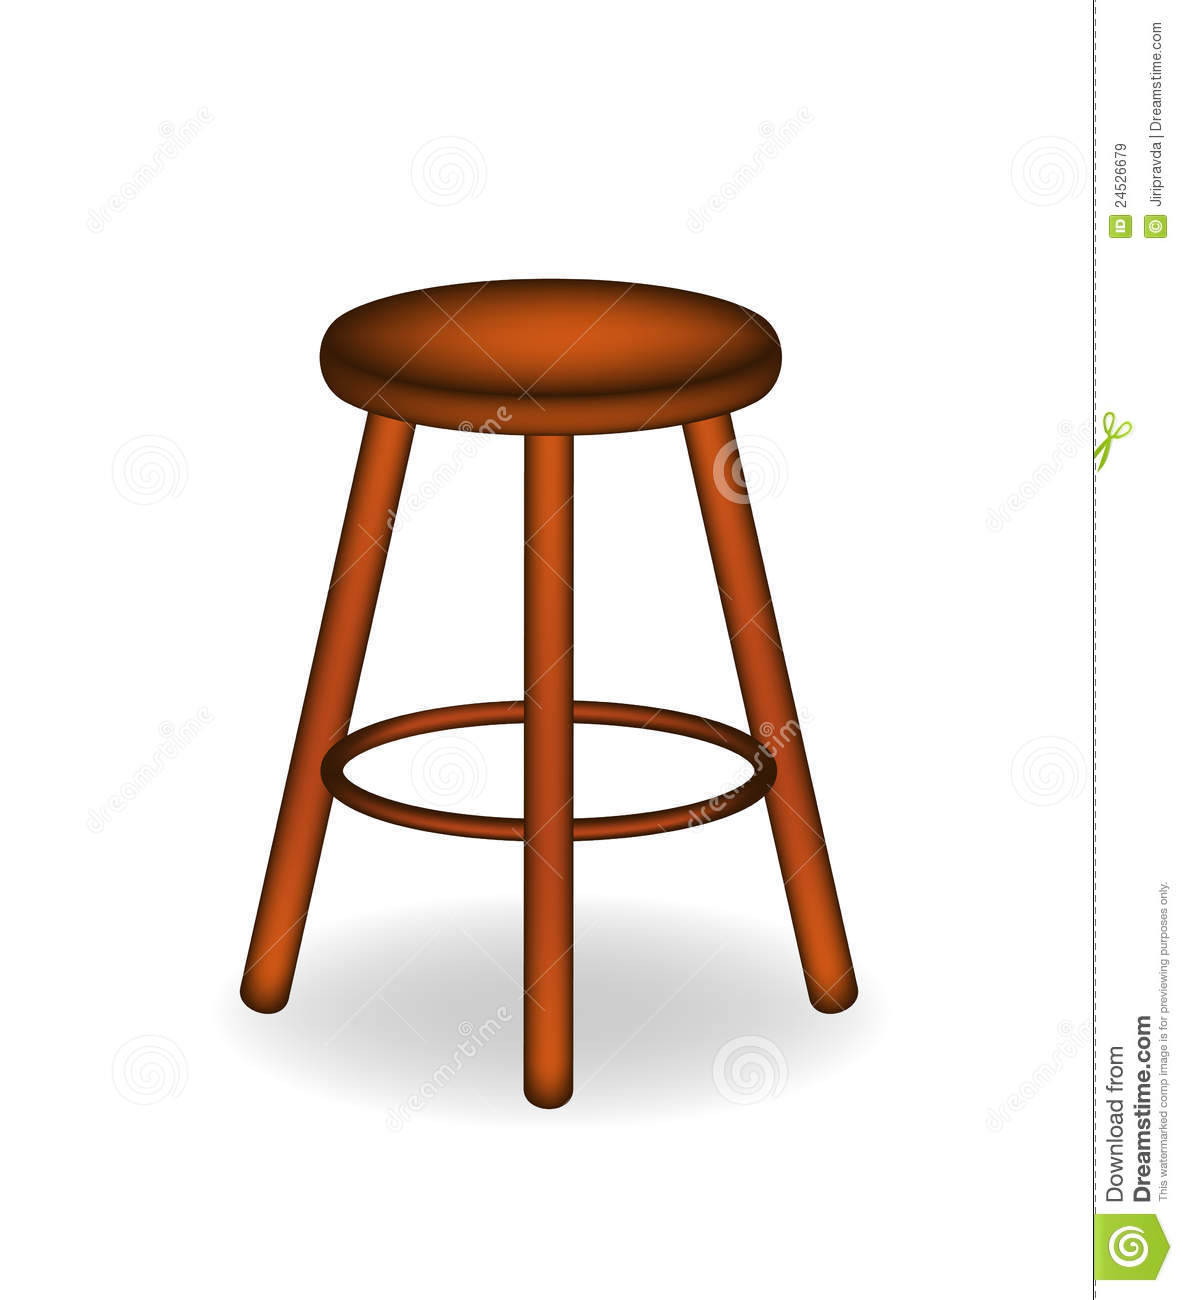 Wonderful image of Retro Wooden Stool Royalty Free Stock Images Image: 24526679 with #461D06 color and 1183x1300 pixels